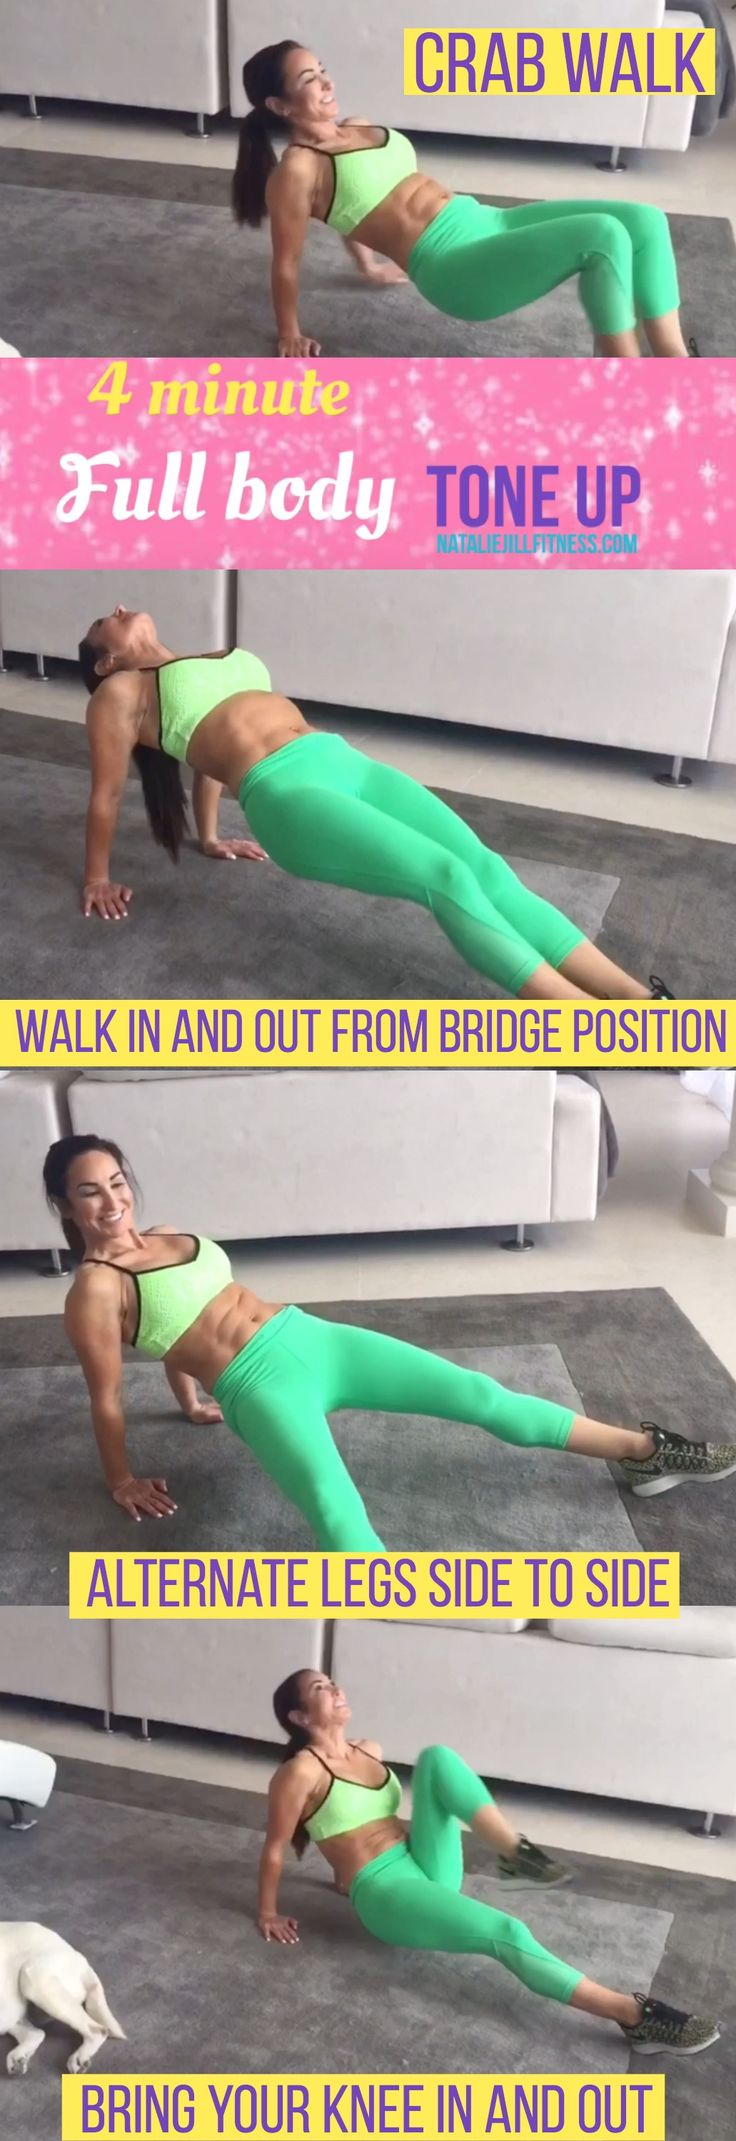 4 minute full body tone up workout routine! REPIN if you're in & click image to watch video. First, From the reverse BRIDGE position, fingers pointed forward, Crab walk forward and back NEXT Walk in and out from the bridge position. You will REALLY feel this in your core, glutes and triceps! Next, holding that reverse bridge position, alternate legs side to side (working those outer thighs) Finally, from that same reverse position, bring your knee IN and out really targeting abs and booty.